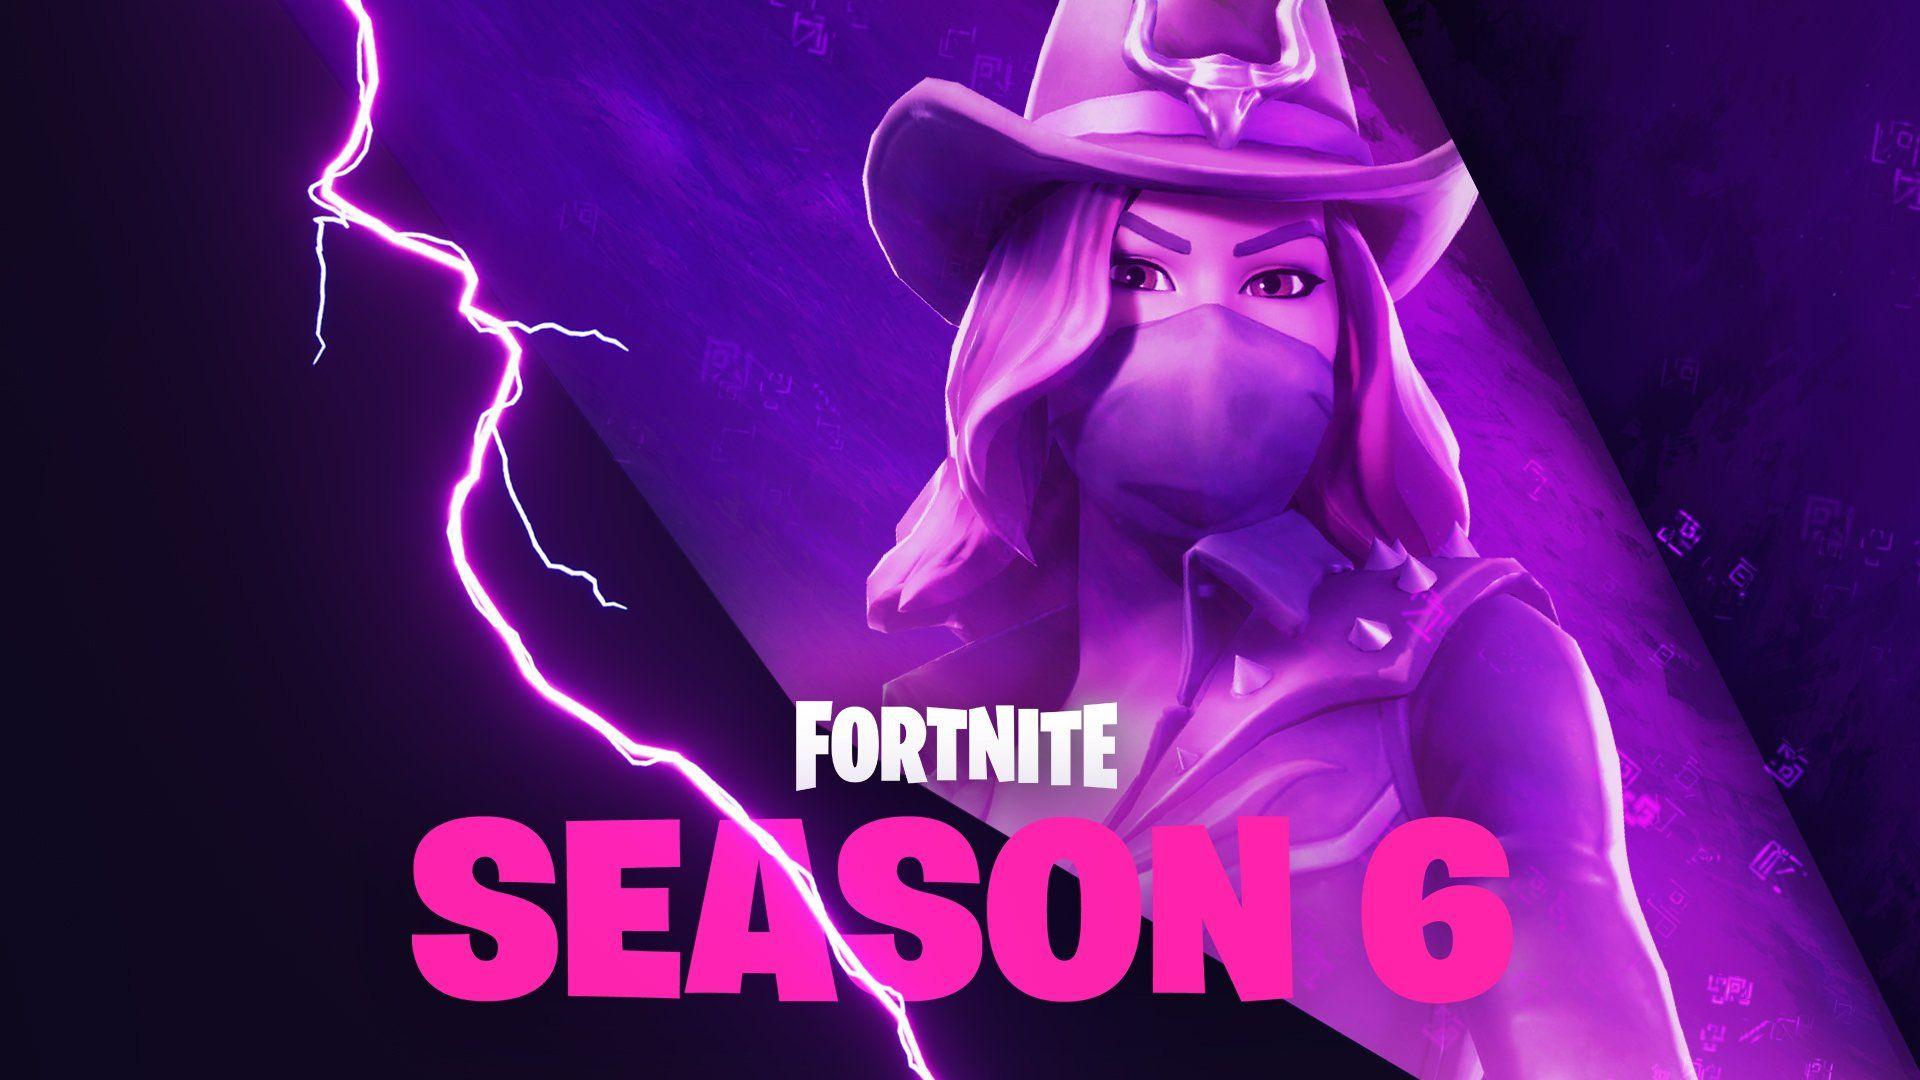 Fortnite Season 6 Guide: How to Unlock the Calamity and Dire Skins ...